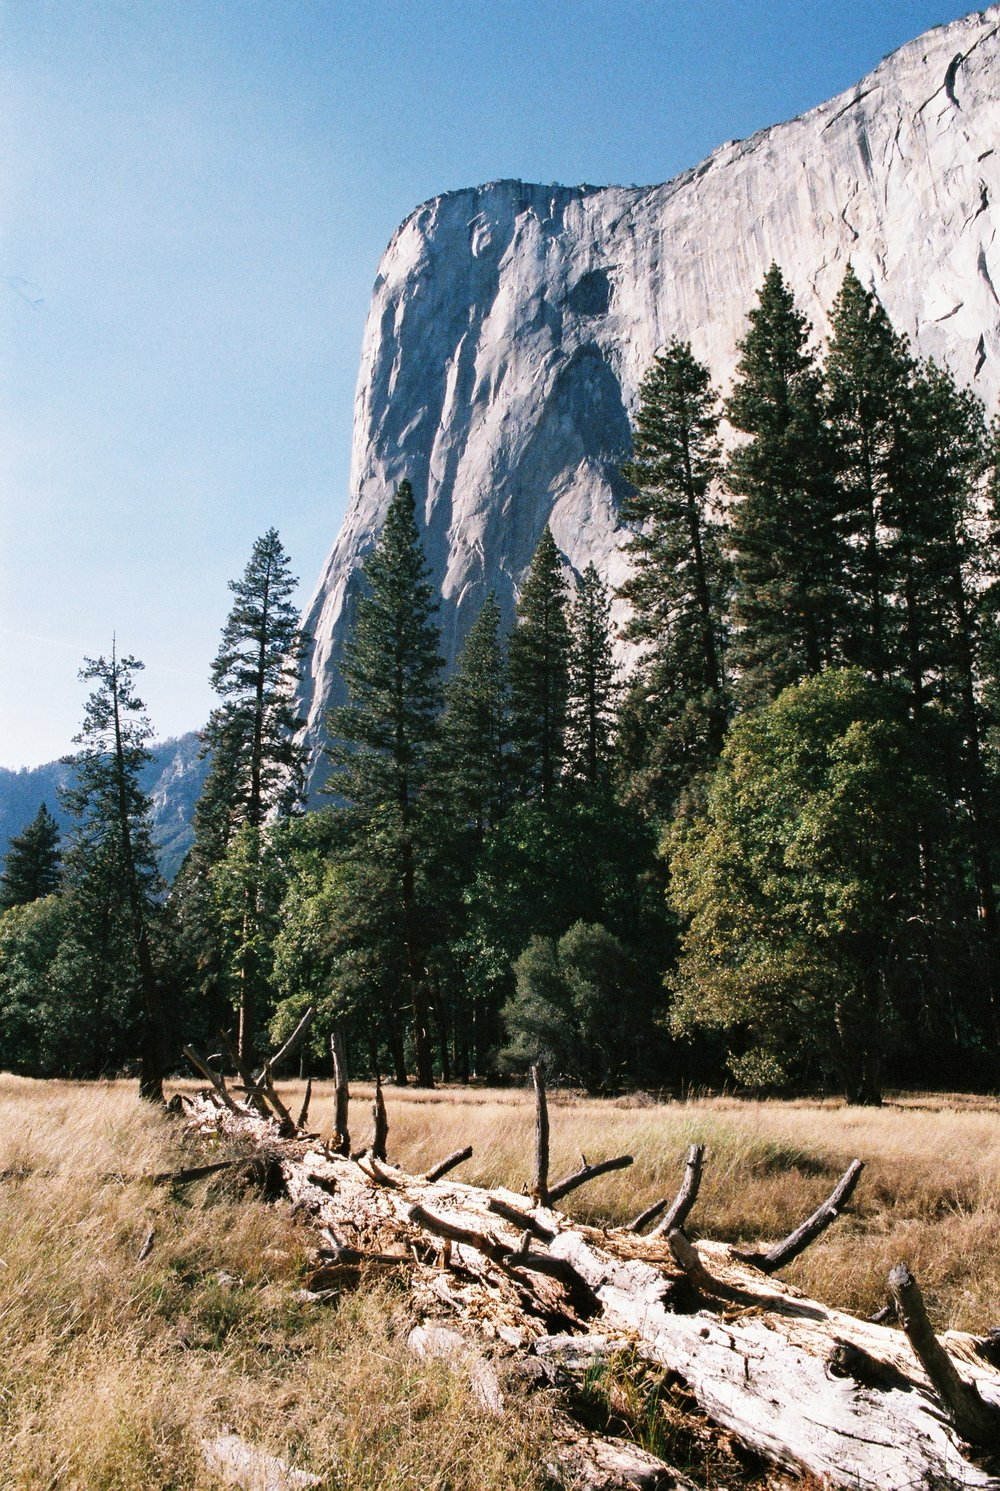 Yosemite National Park, California, USA   Olympus OM-2n